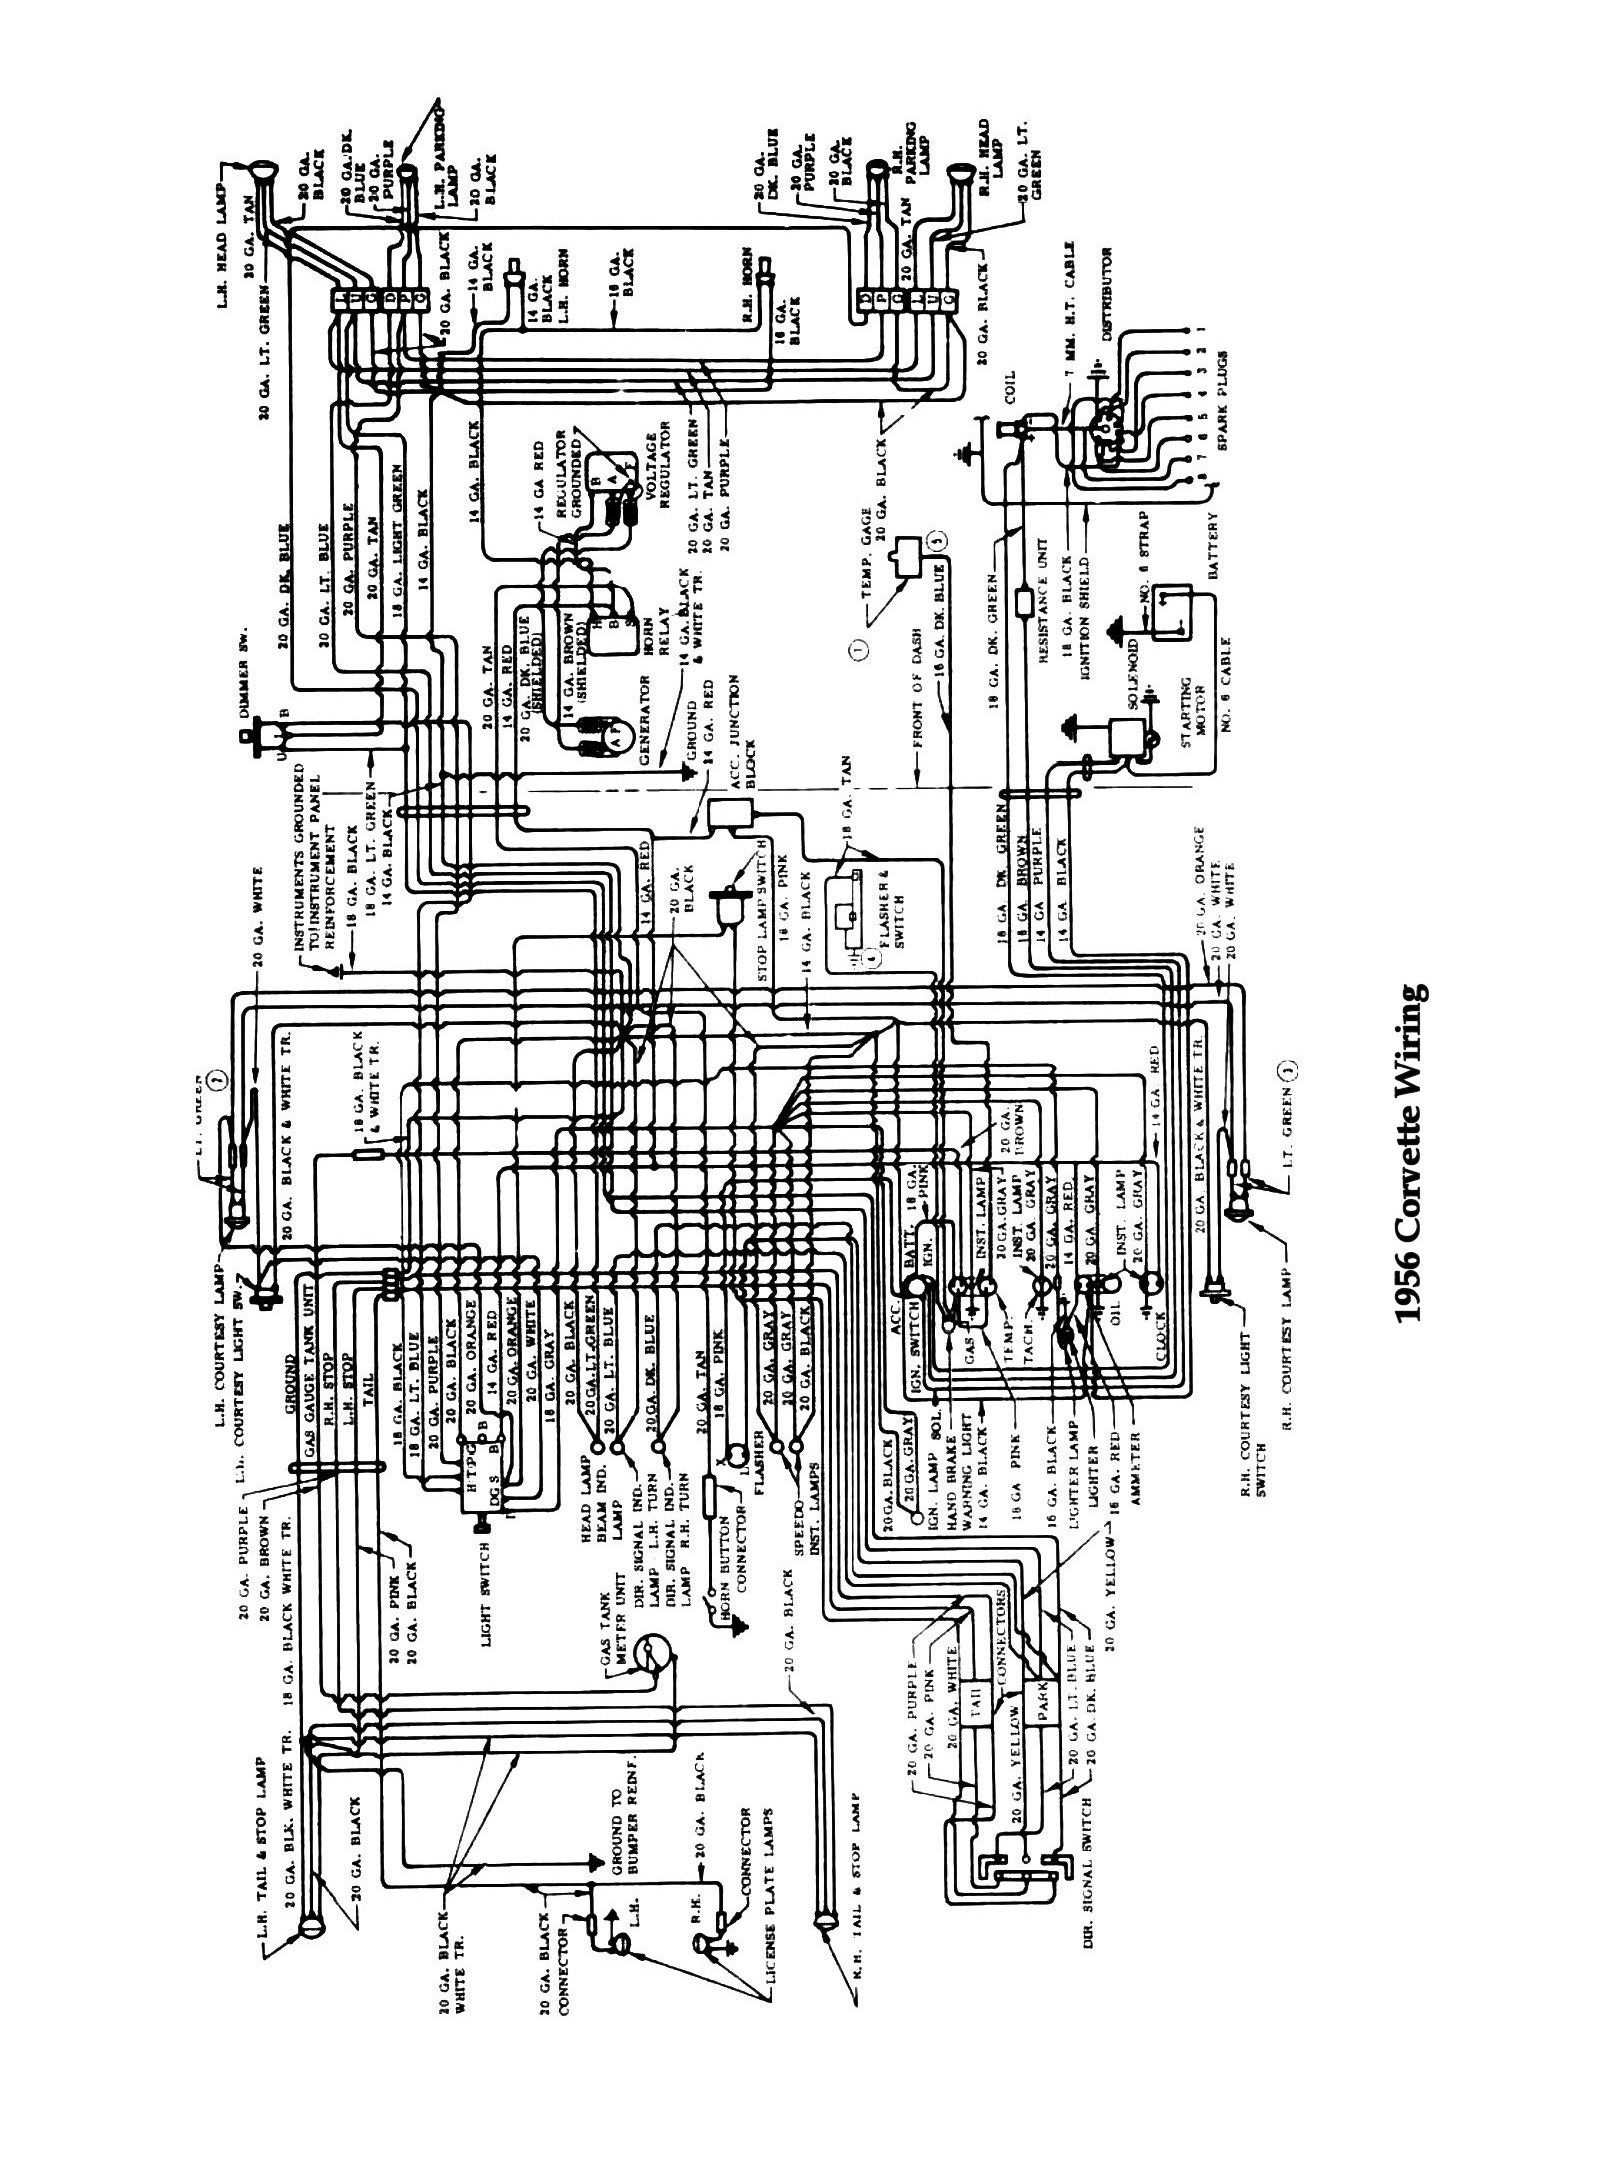 1960 corvette wiring diagram   28 wiring diagram images